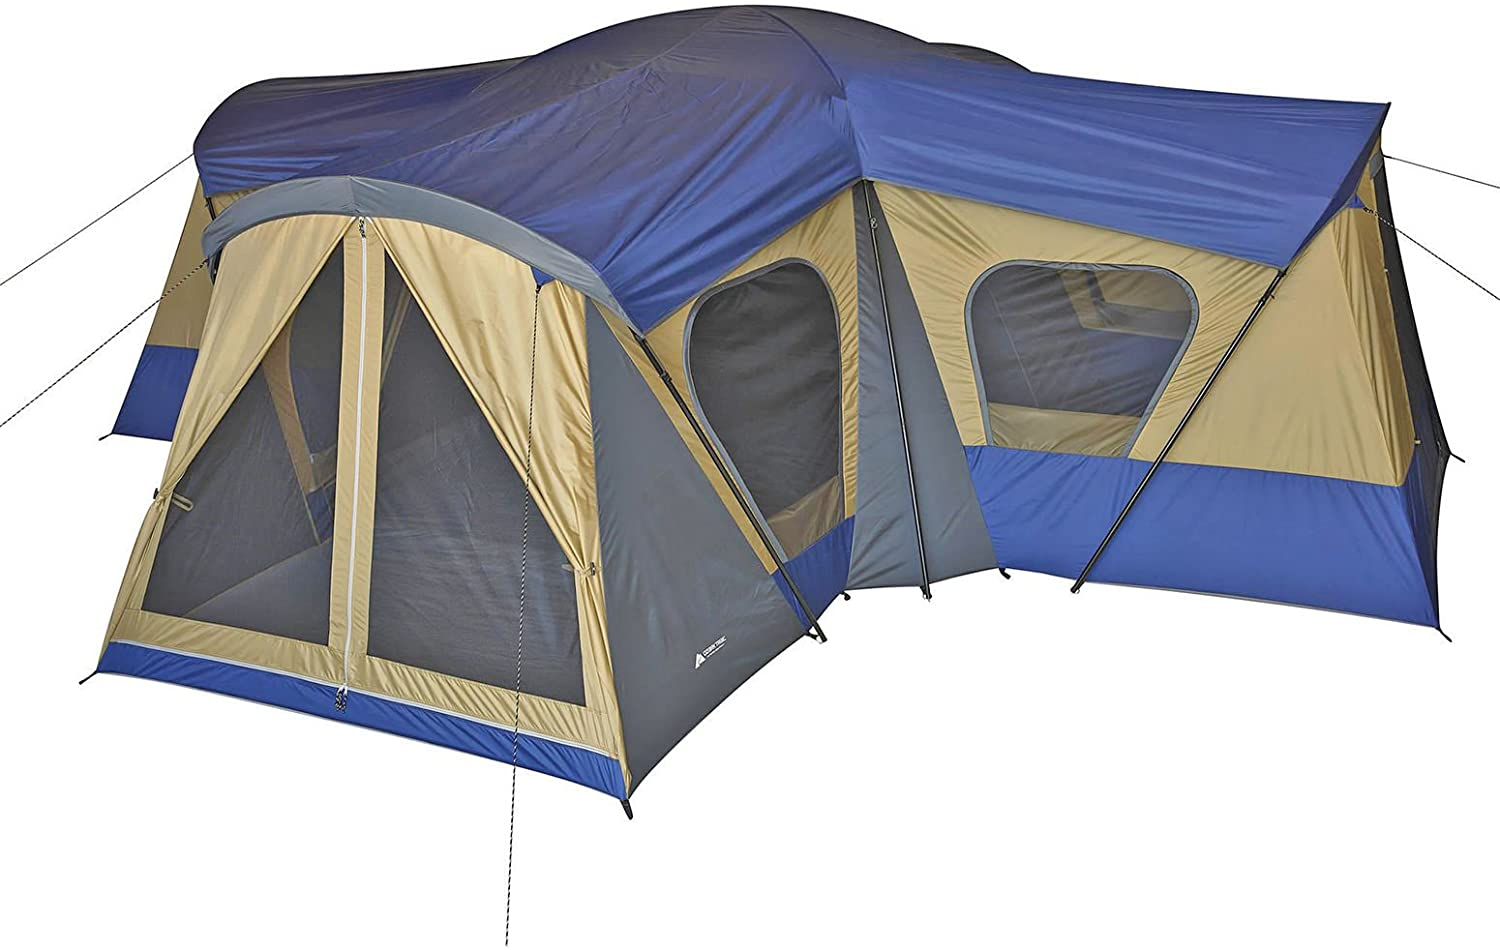 Image of a huge tent in blue and gold color, with screen door and windows, four compartments.